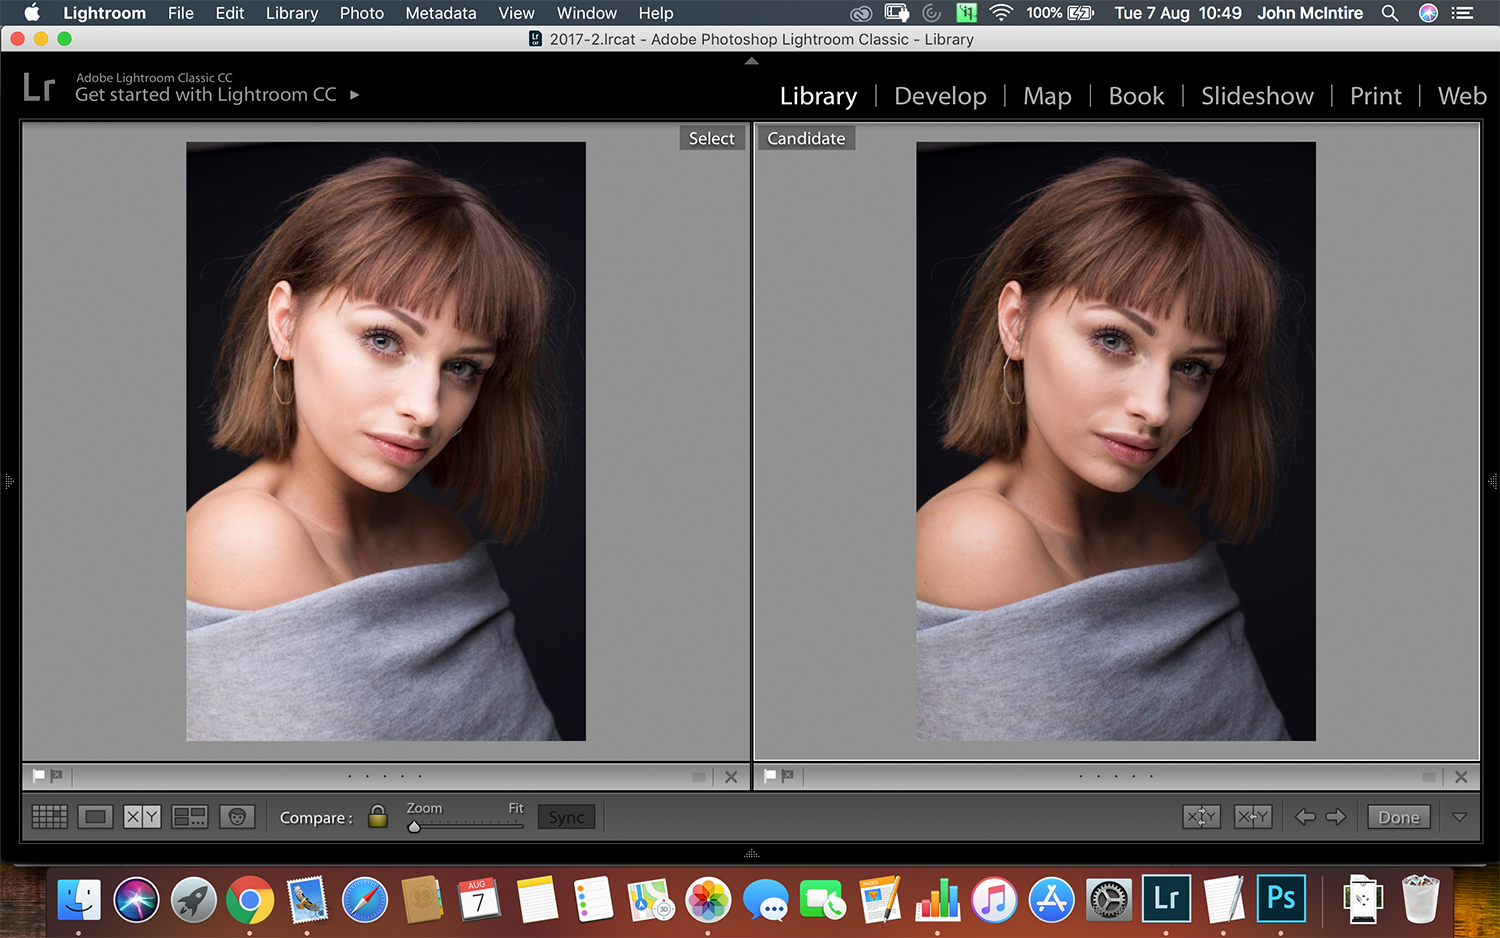 raw processing in Lightroom - Why I've Become a Light Meter Convert